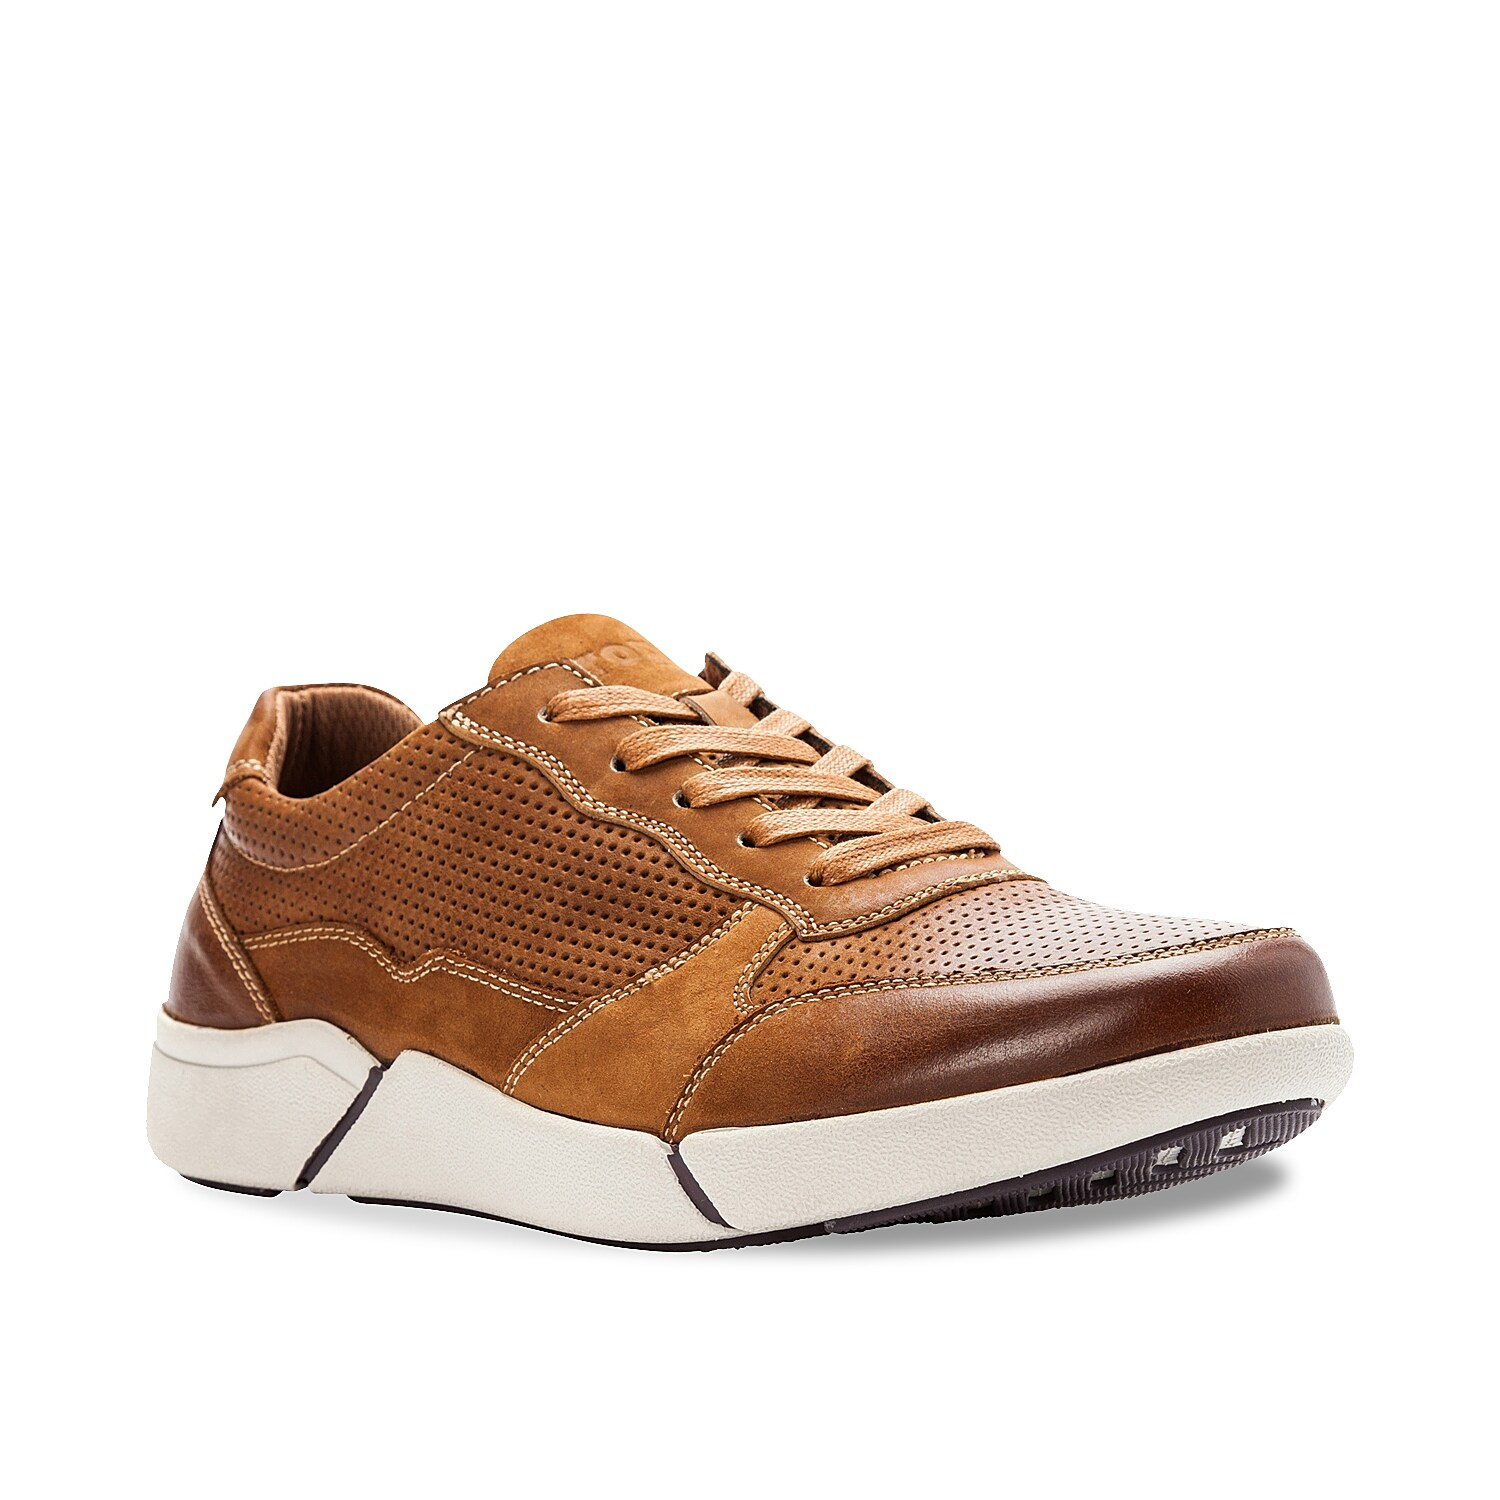 Stay on top of your day in the Landon sneakers from Propet. These leather lace-ups feature a perforated design and are backed by a lightweight midsole for lasting support.